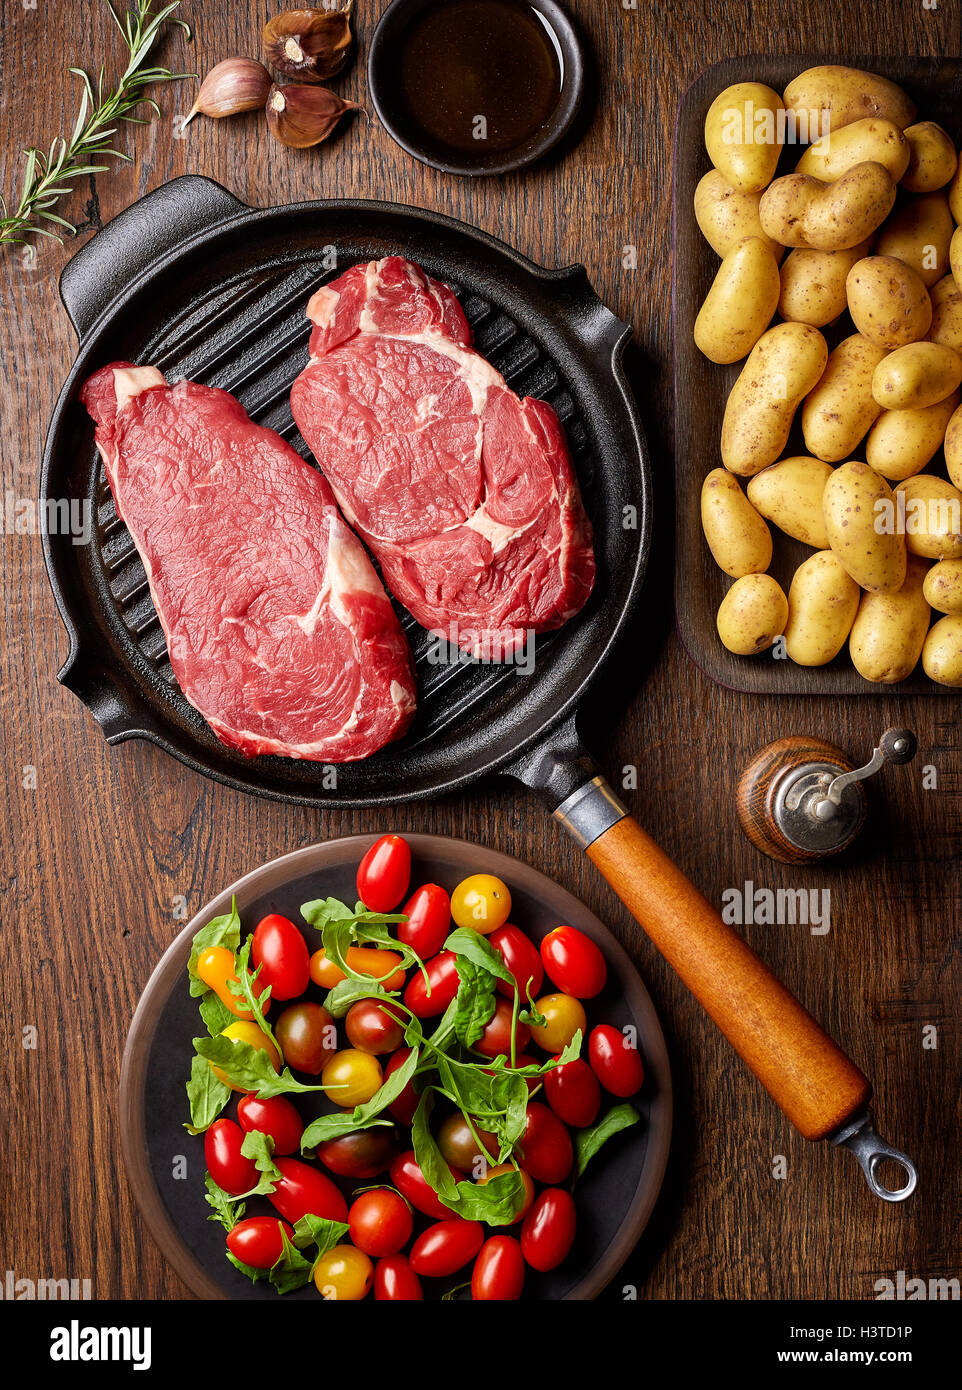 Raw beef steak on grill pan, potatoes, spices and tomatoes, top view, on wooden table - Stock Image